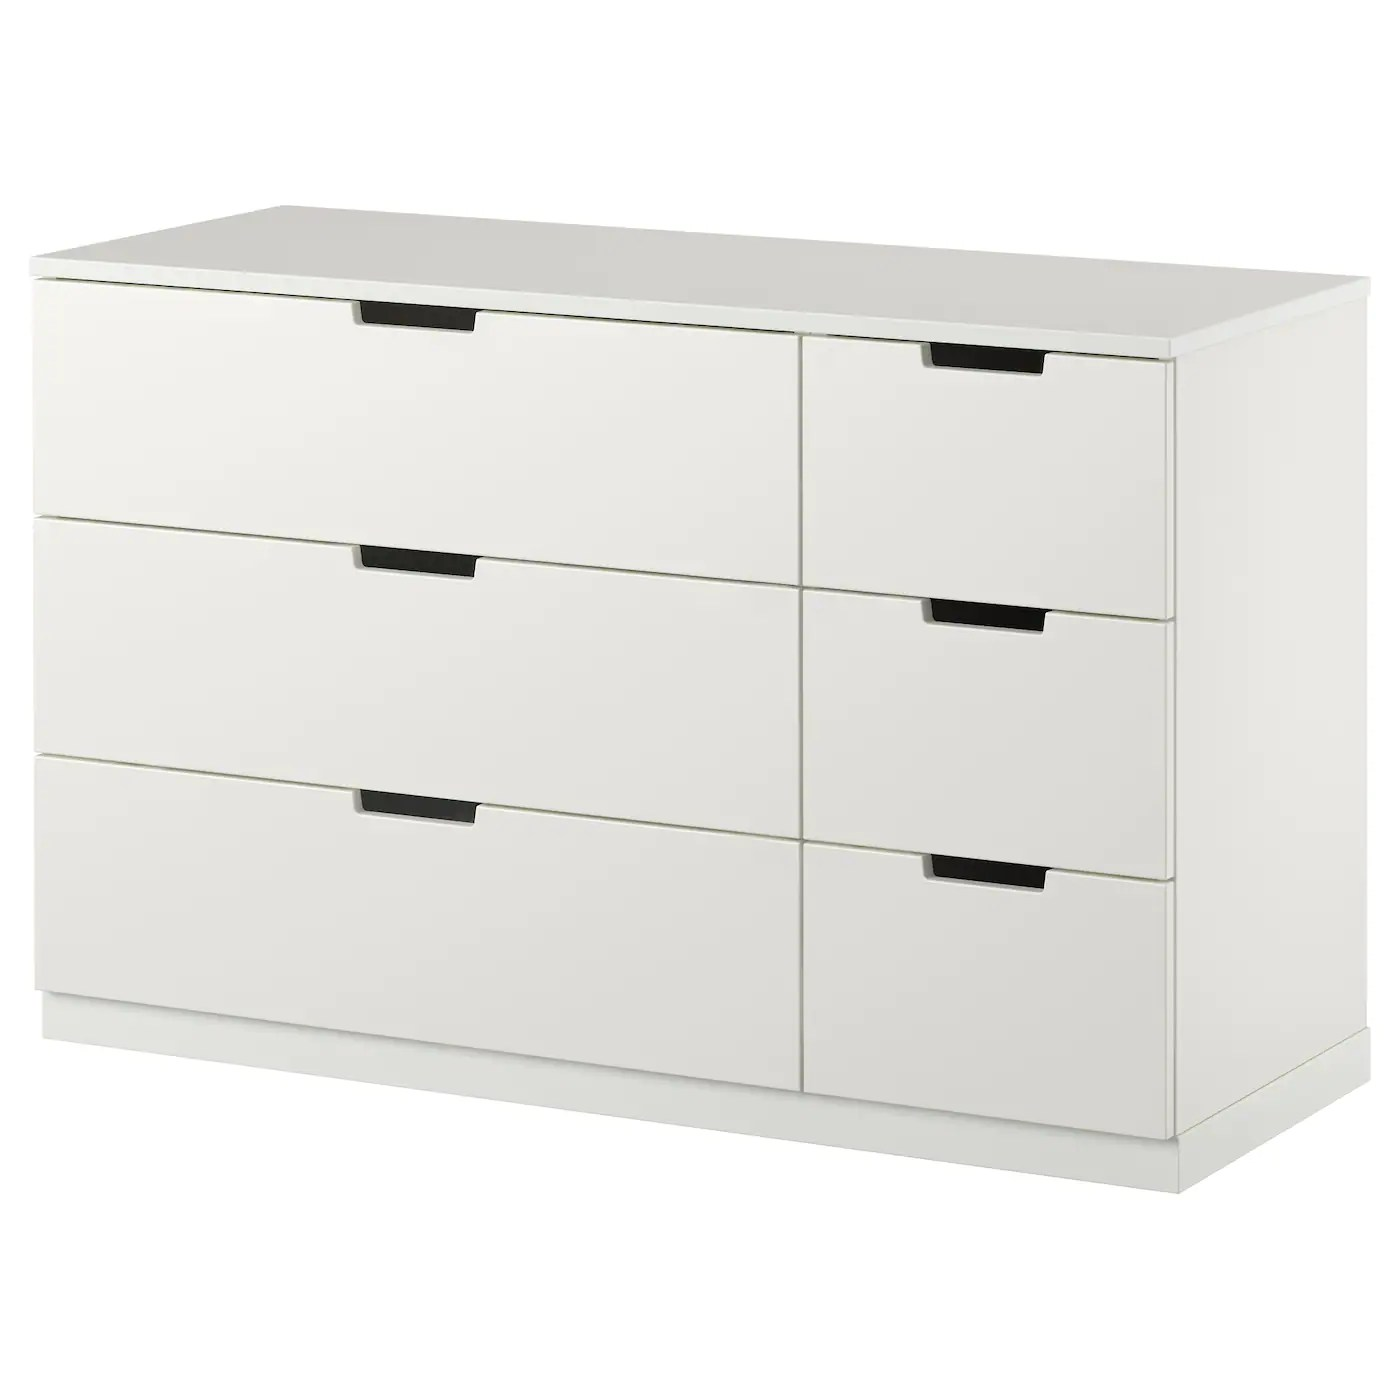 Ikea Nordli Dresser Nordli Chest Of 6 Drawers White 120x75 Cm - Ikea